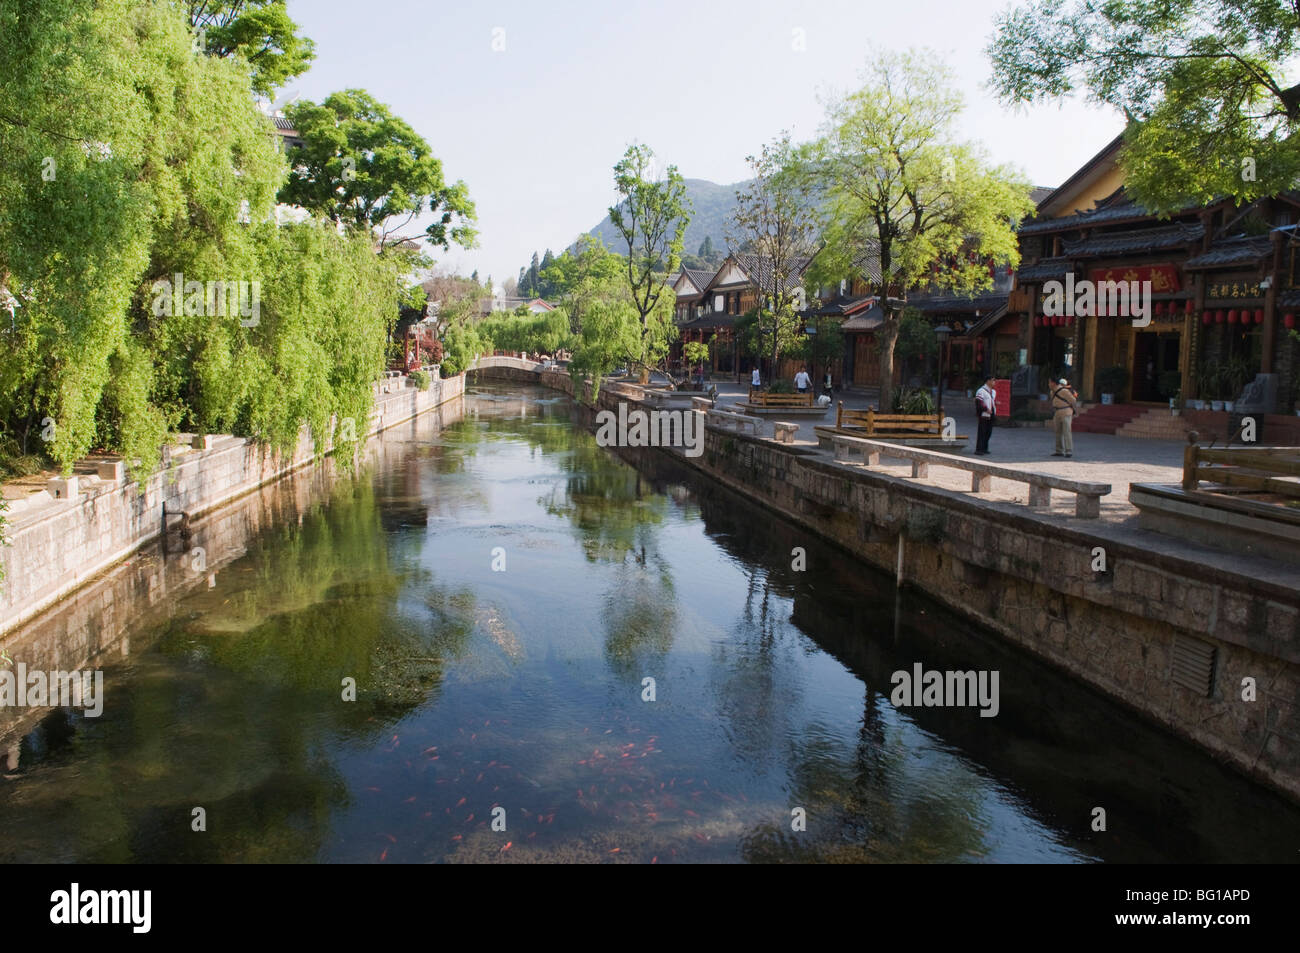 Riverside traditional architecture in Lijiang Old Town, UNESCO World Heritage Site, Yunnan Province, China, Asia - Stock Image